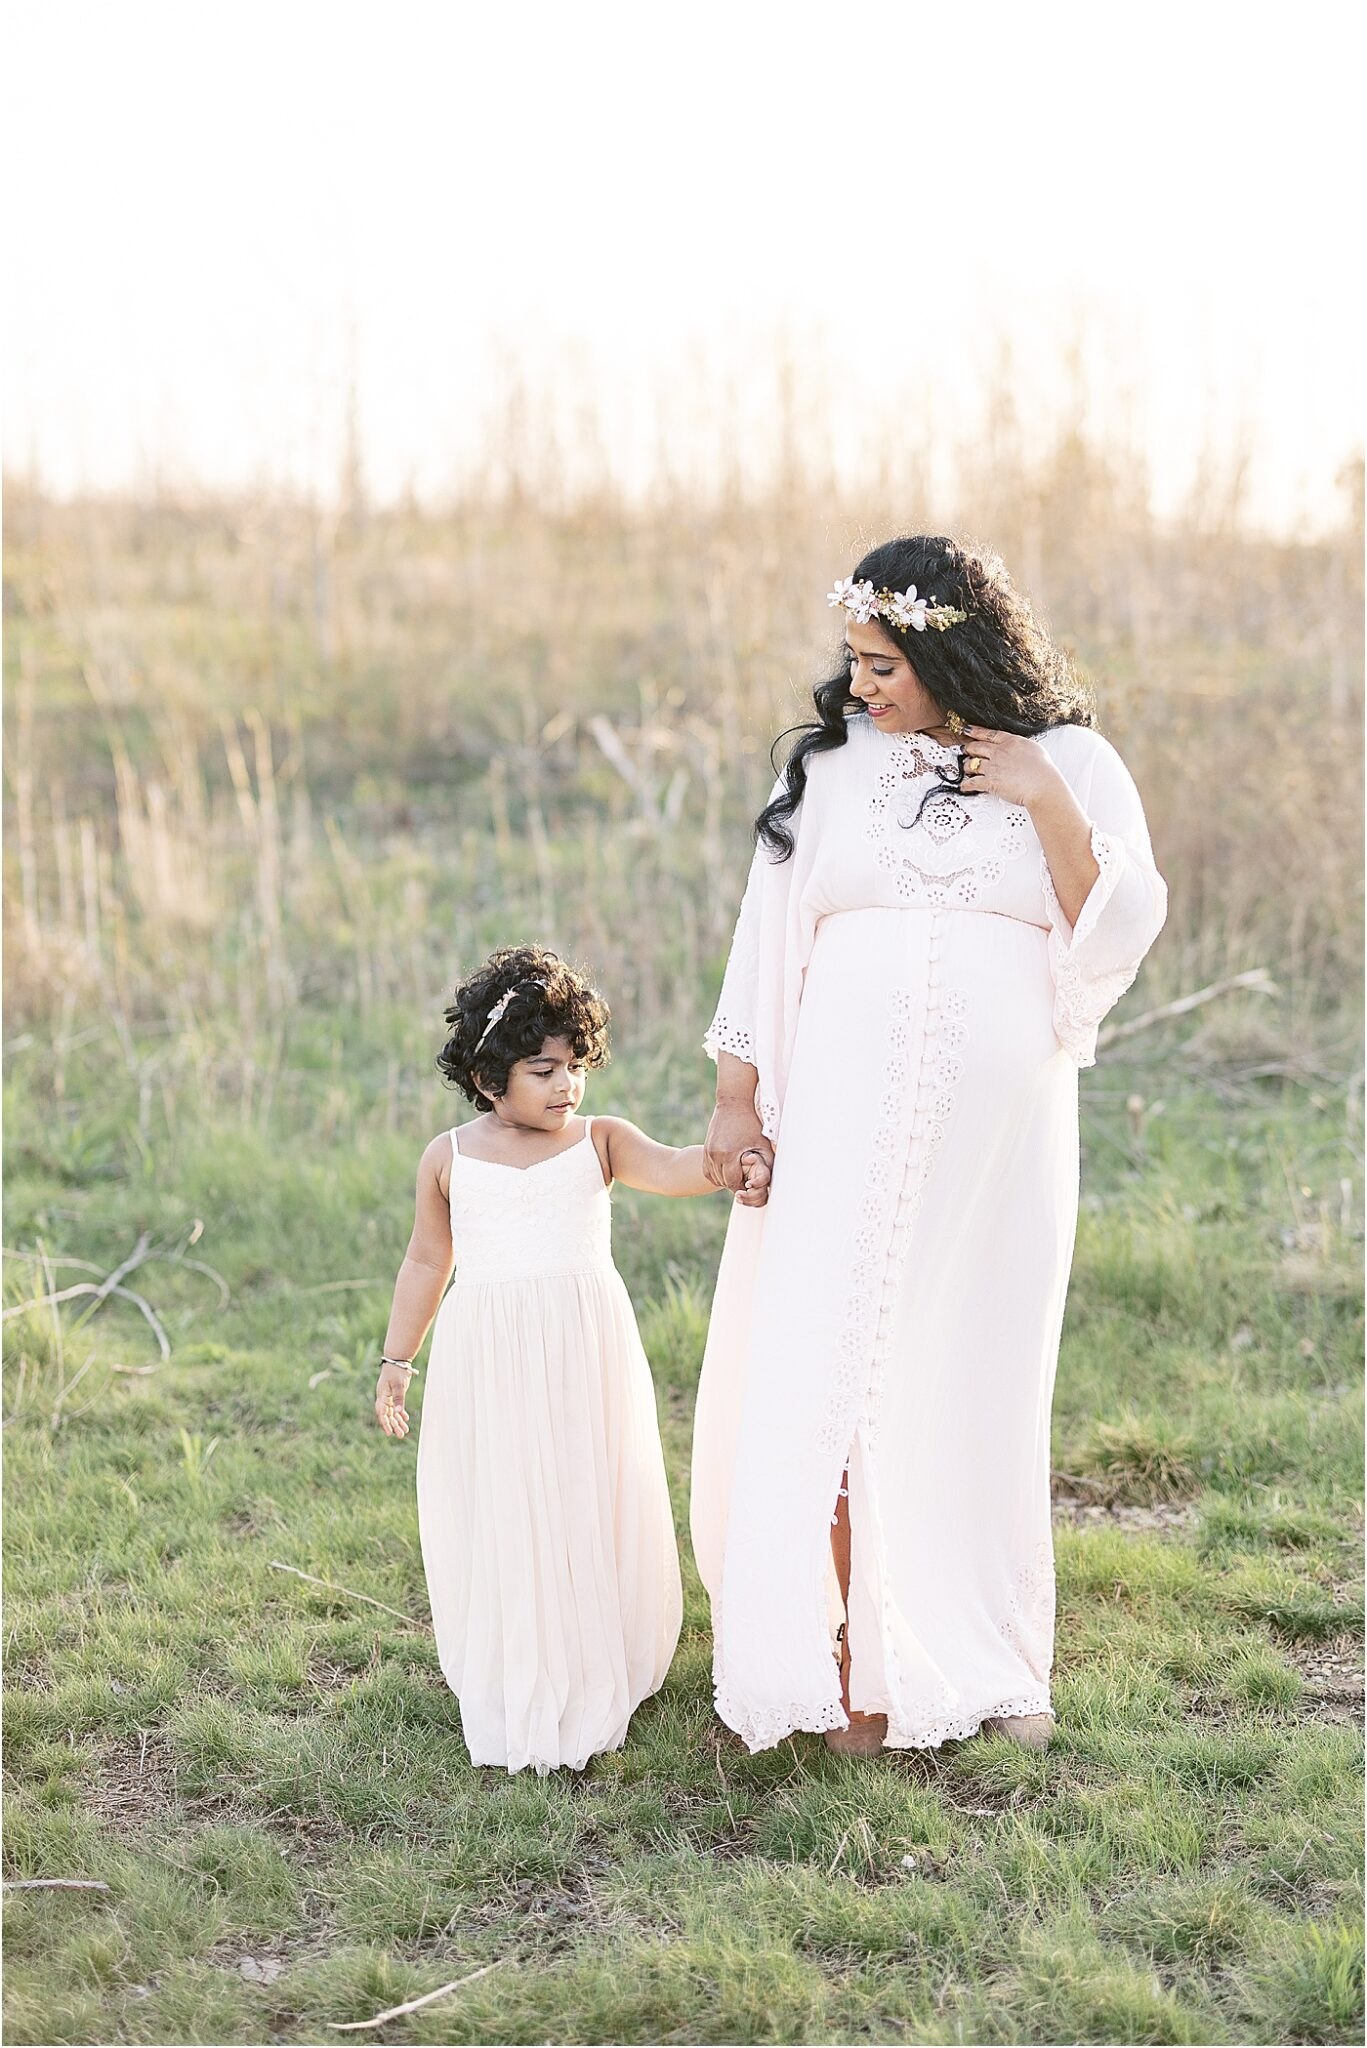 Mom and daughter spend their evening doing maternity photos with Lindsay Konopa Photography, a natural light photographer in Indy.